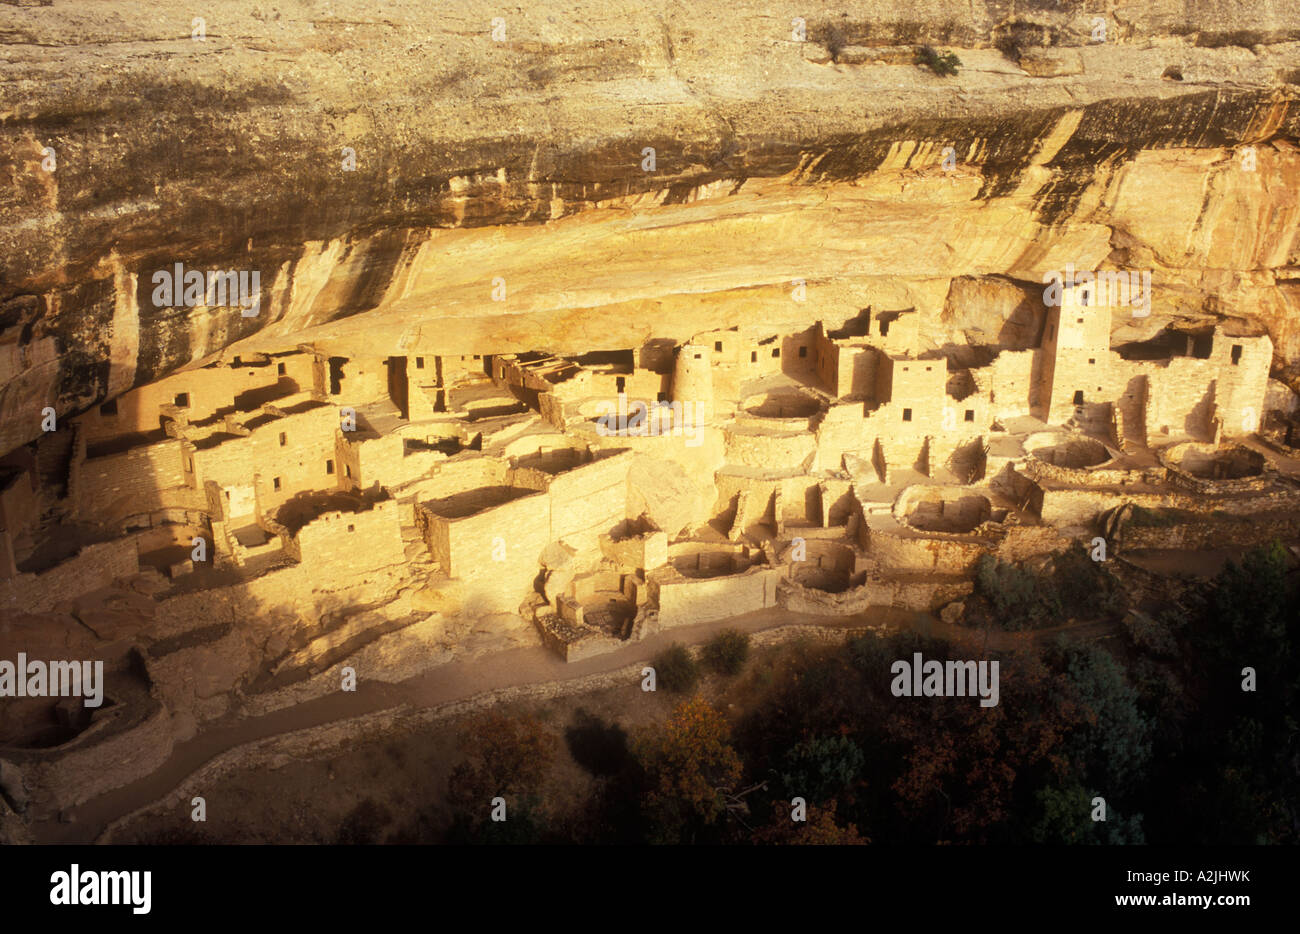 USA Colorado Mesa Verde National Park Cliff Palace cliff dwellings of the Anasazi A D 1200 - Stock Image